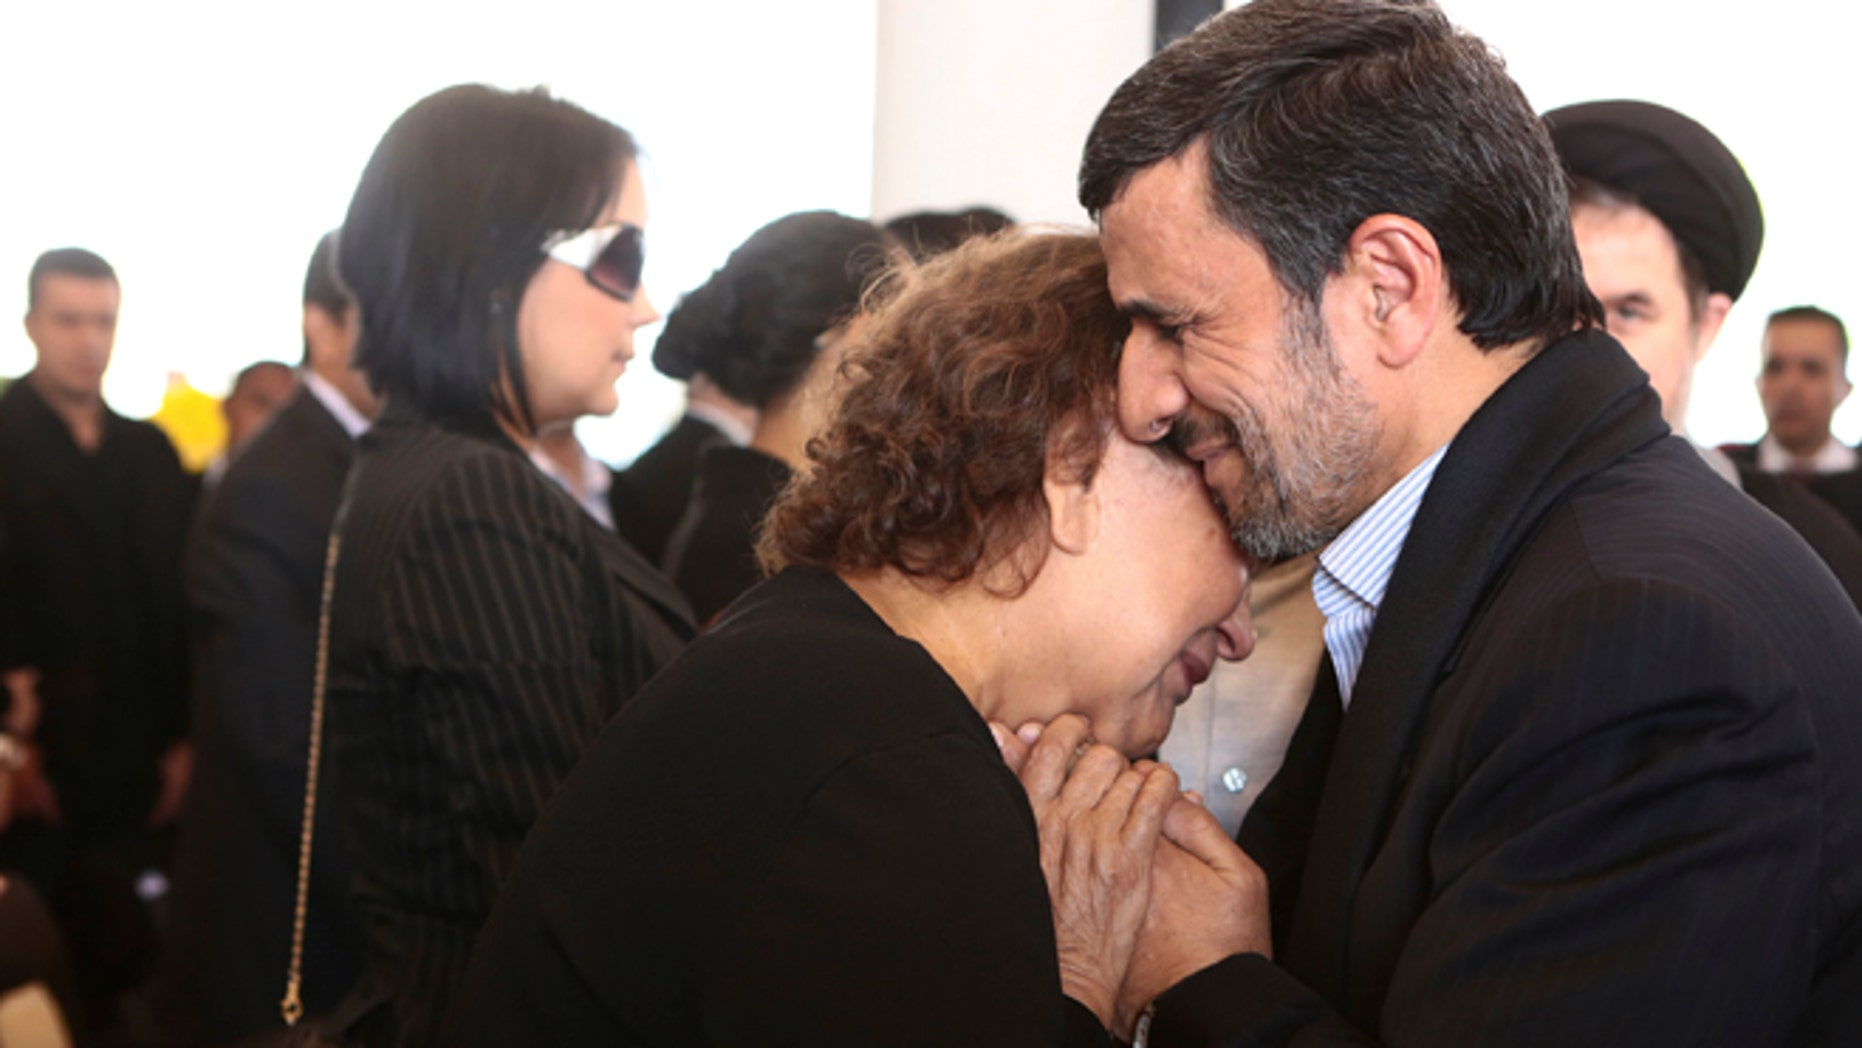 FILE --In this Friday, March 8, 2013 file photo released by the Miraflores Press Office, Iran's President Mahmoud Ahmadinejad comforts Elena Frias next to the flag-draped coffin of her son, Venezuela's late President Hugo Chavez, during the funeral ceremony at the military academy in Caracas, Venezuela.